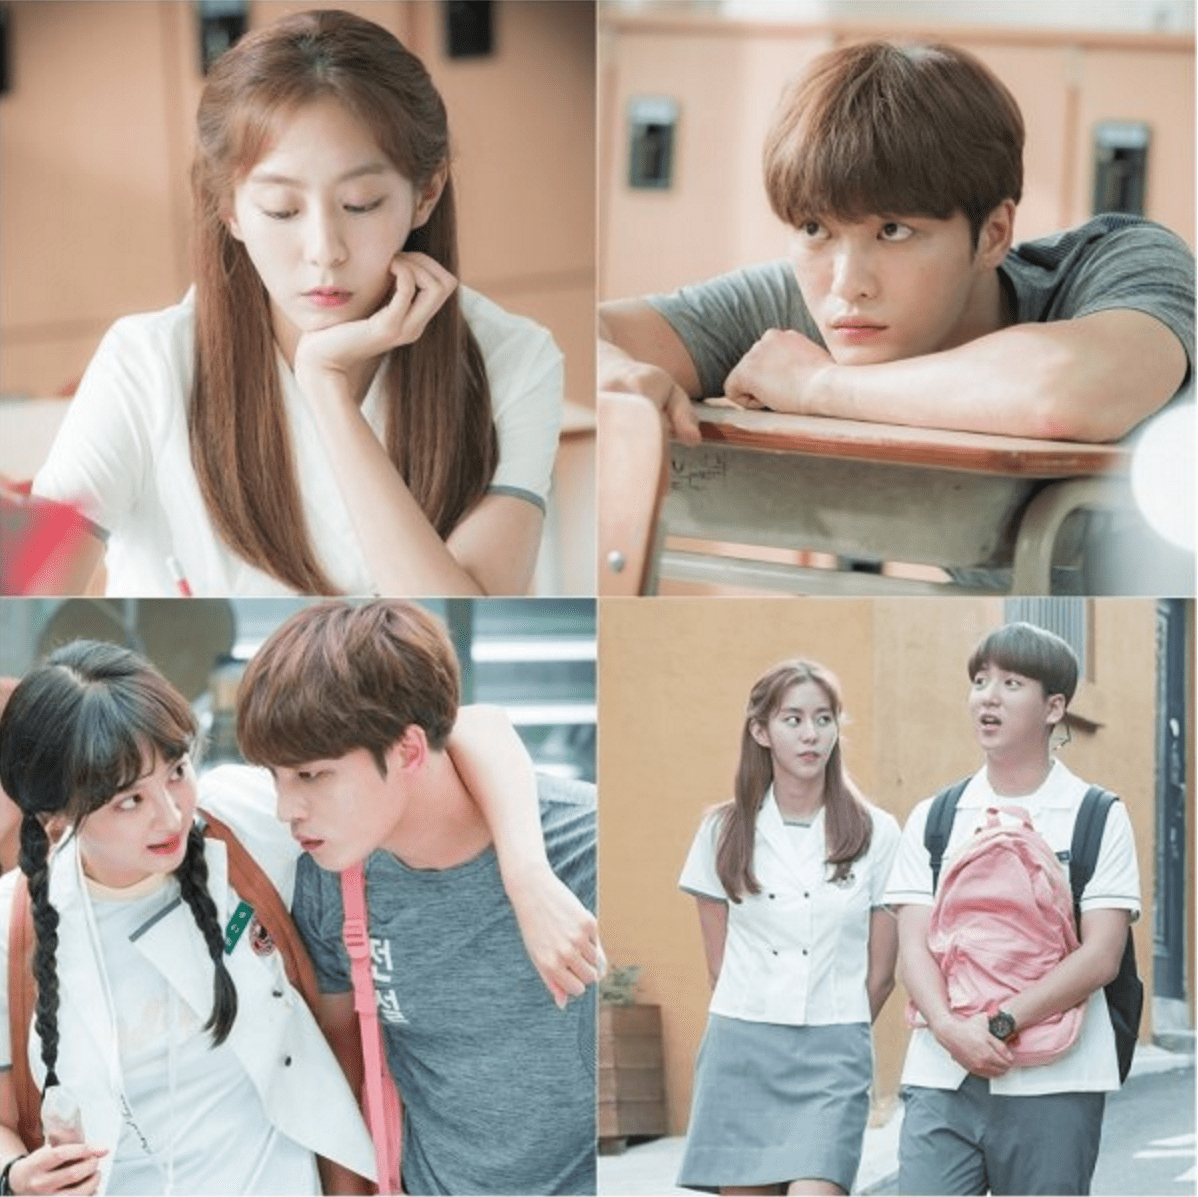 Manhole Releases Teasers Of UEE, Kim Jaejoong, Jung Hye Sung, And B1A4s Baro In High School Uniforms